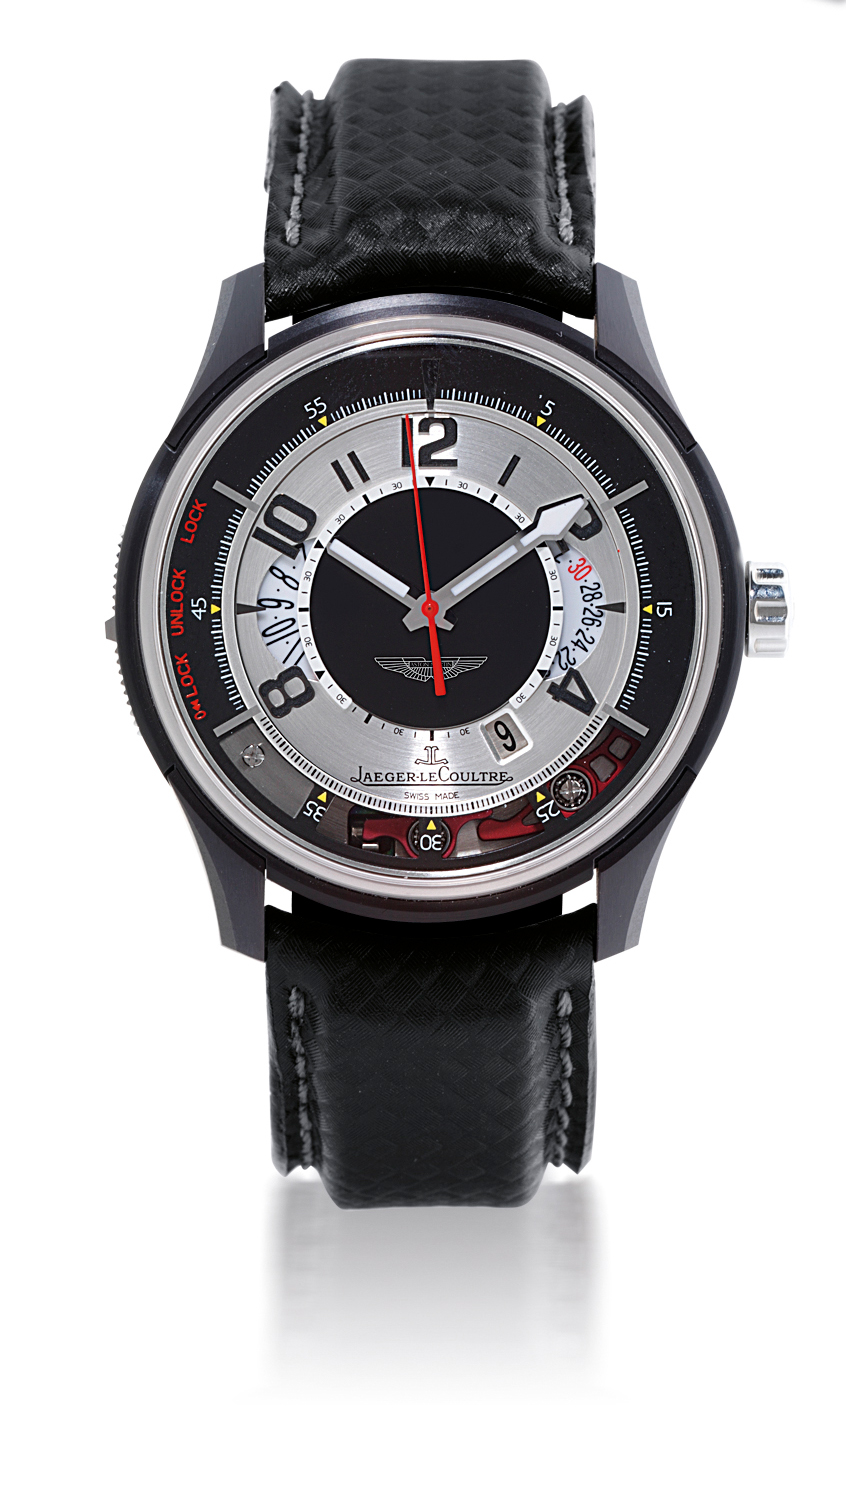 JAEGER-LECOULTRE, ASTON MARTIN AMVOX2  TITANIUM AUTOMATIC VERTICAL TRIGGER CHRONOGRAPH WRISTWATCH WITH DATE DISPLAY, LIMITED EDITION OF 500